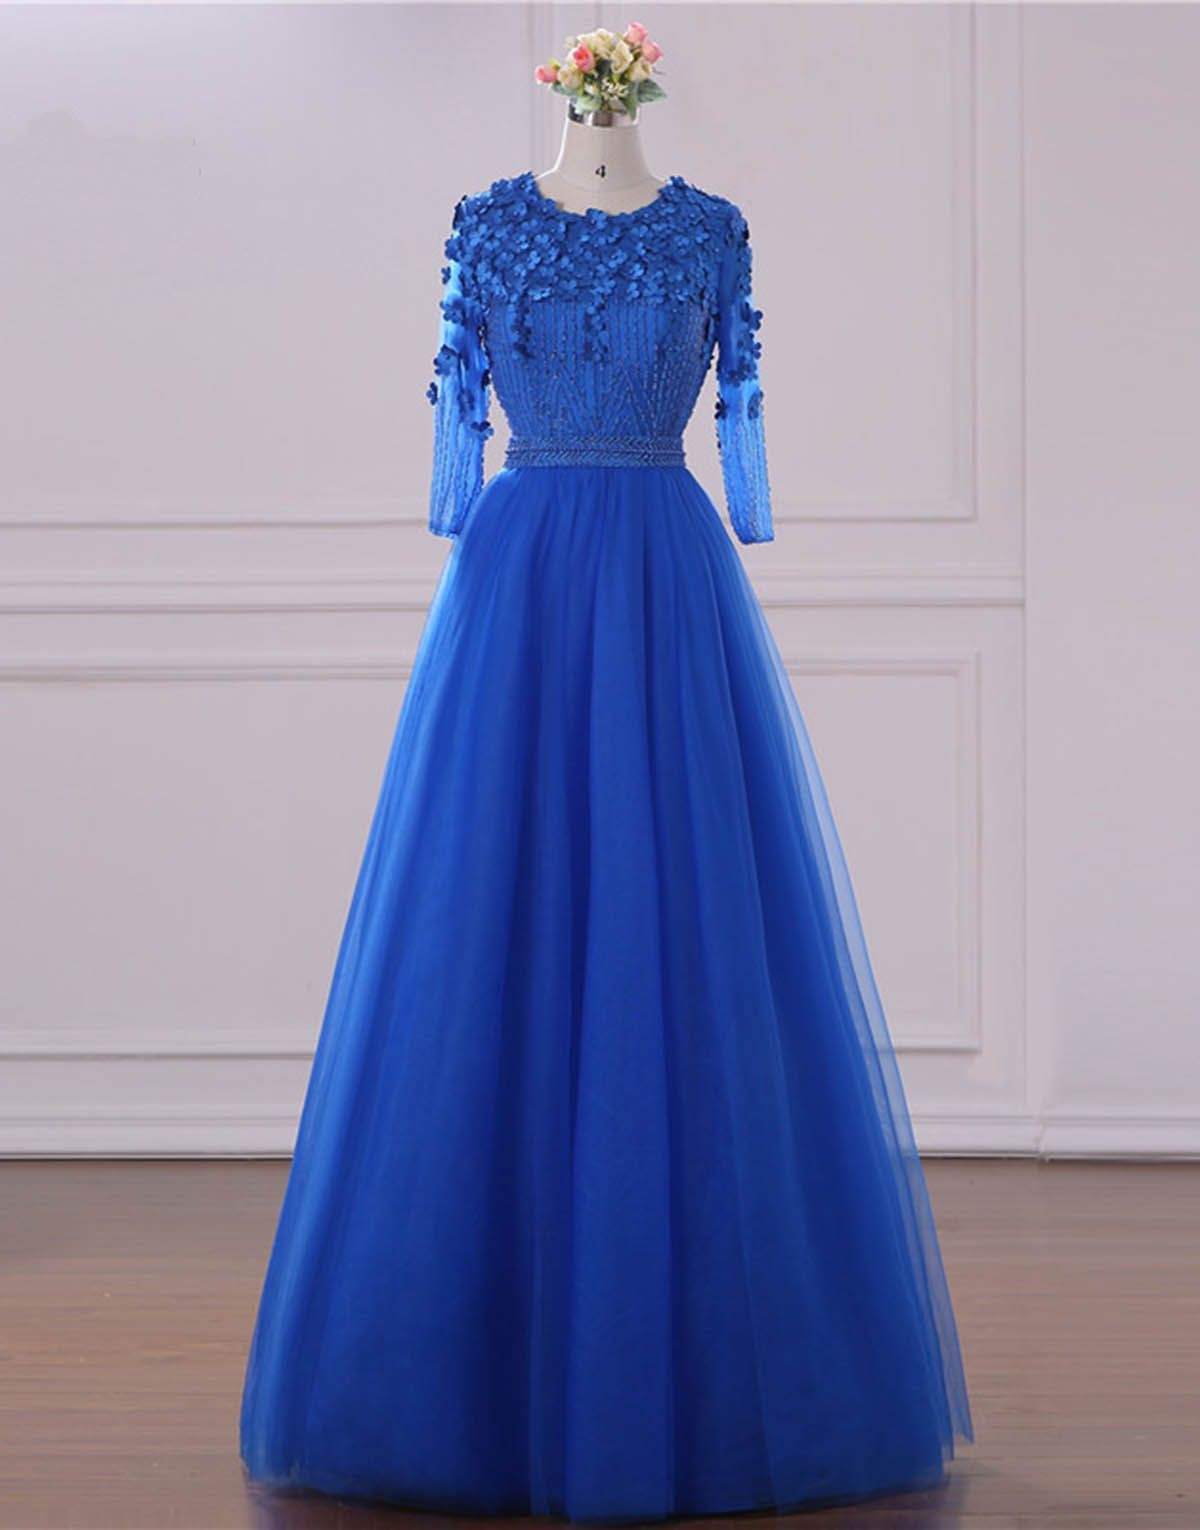 Royal blue tulle long customize sequins prom dress with mid sleeve